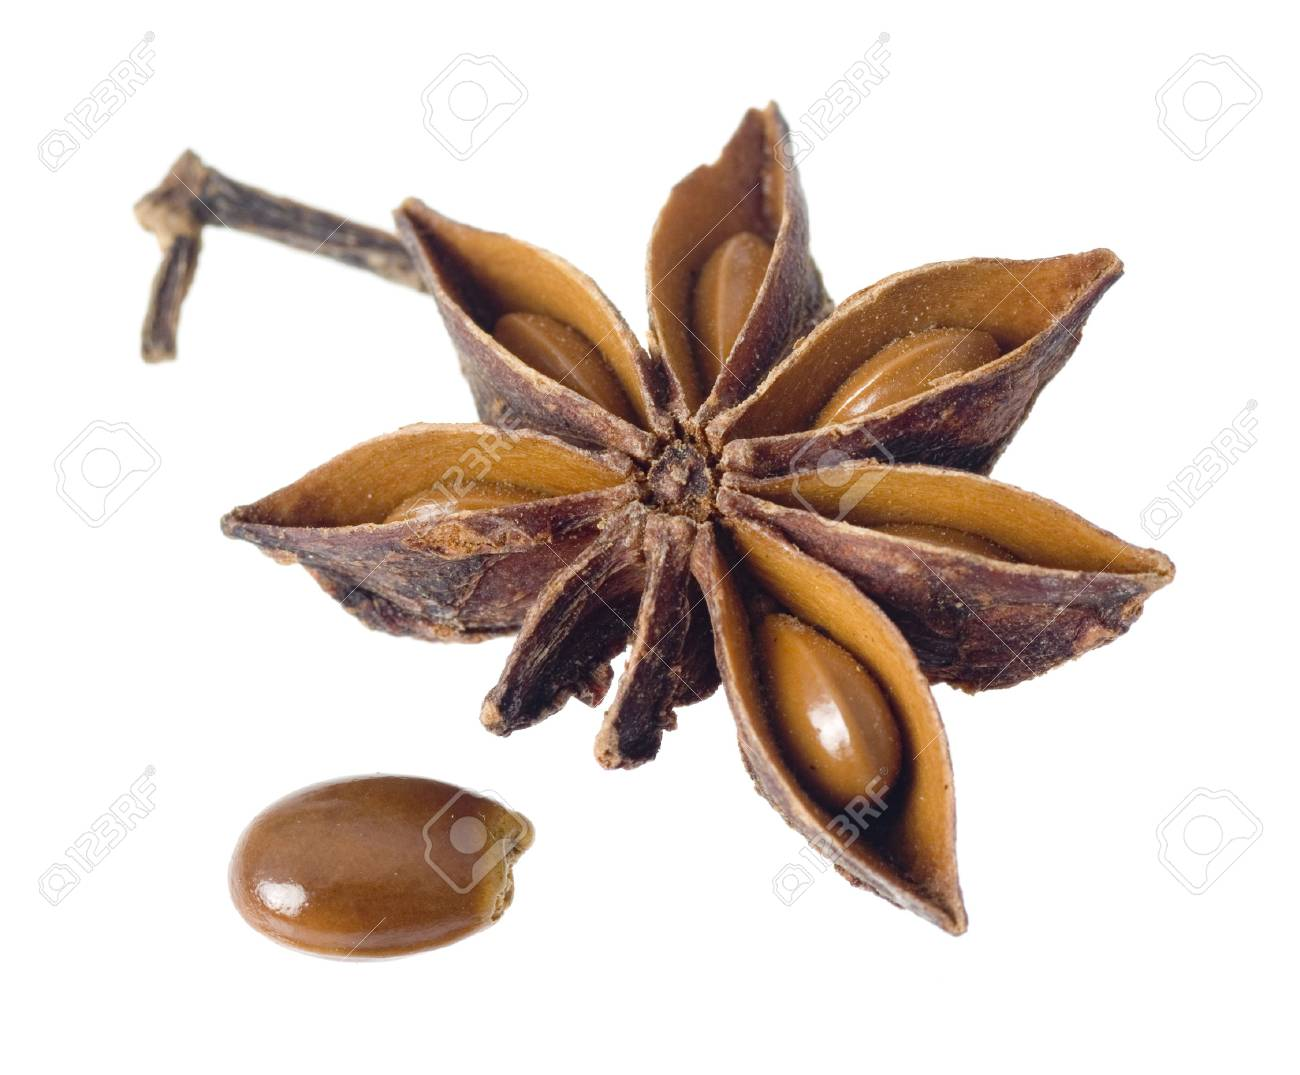 Star anise with seed isolated on white background Stock Photo - 1518751